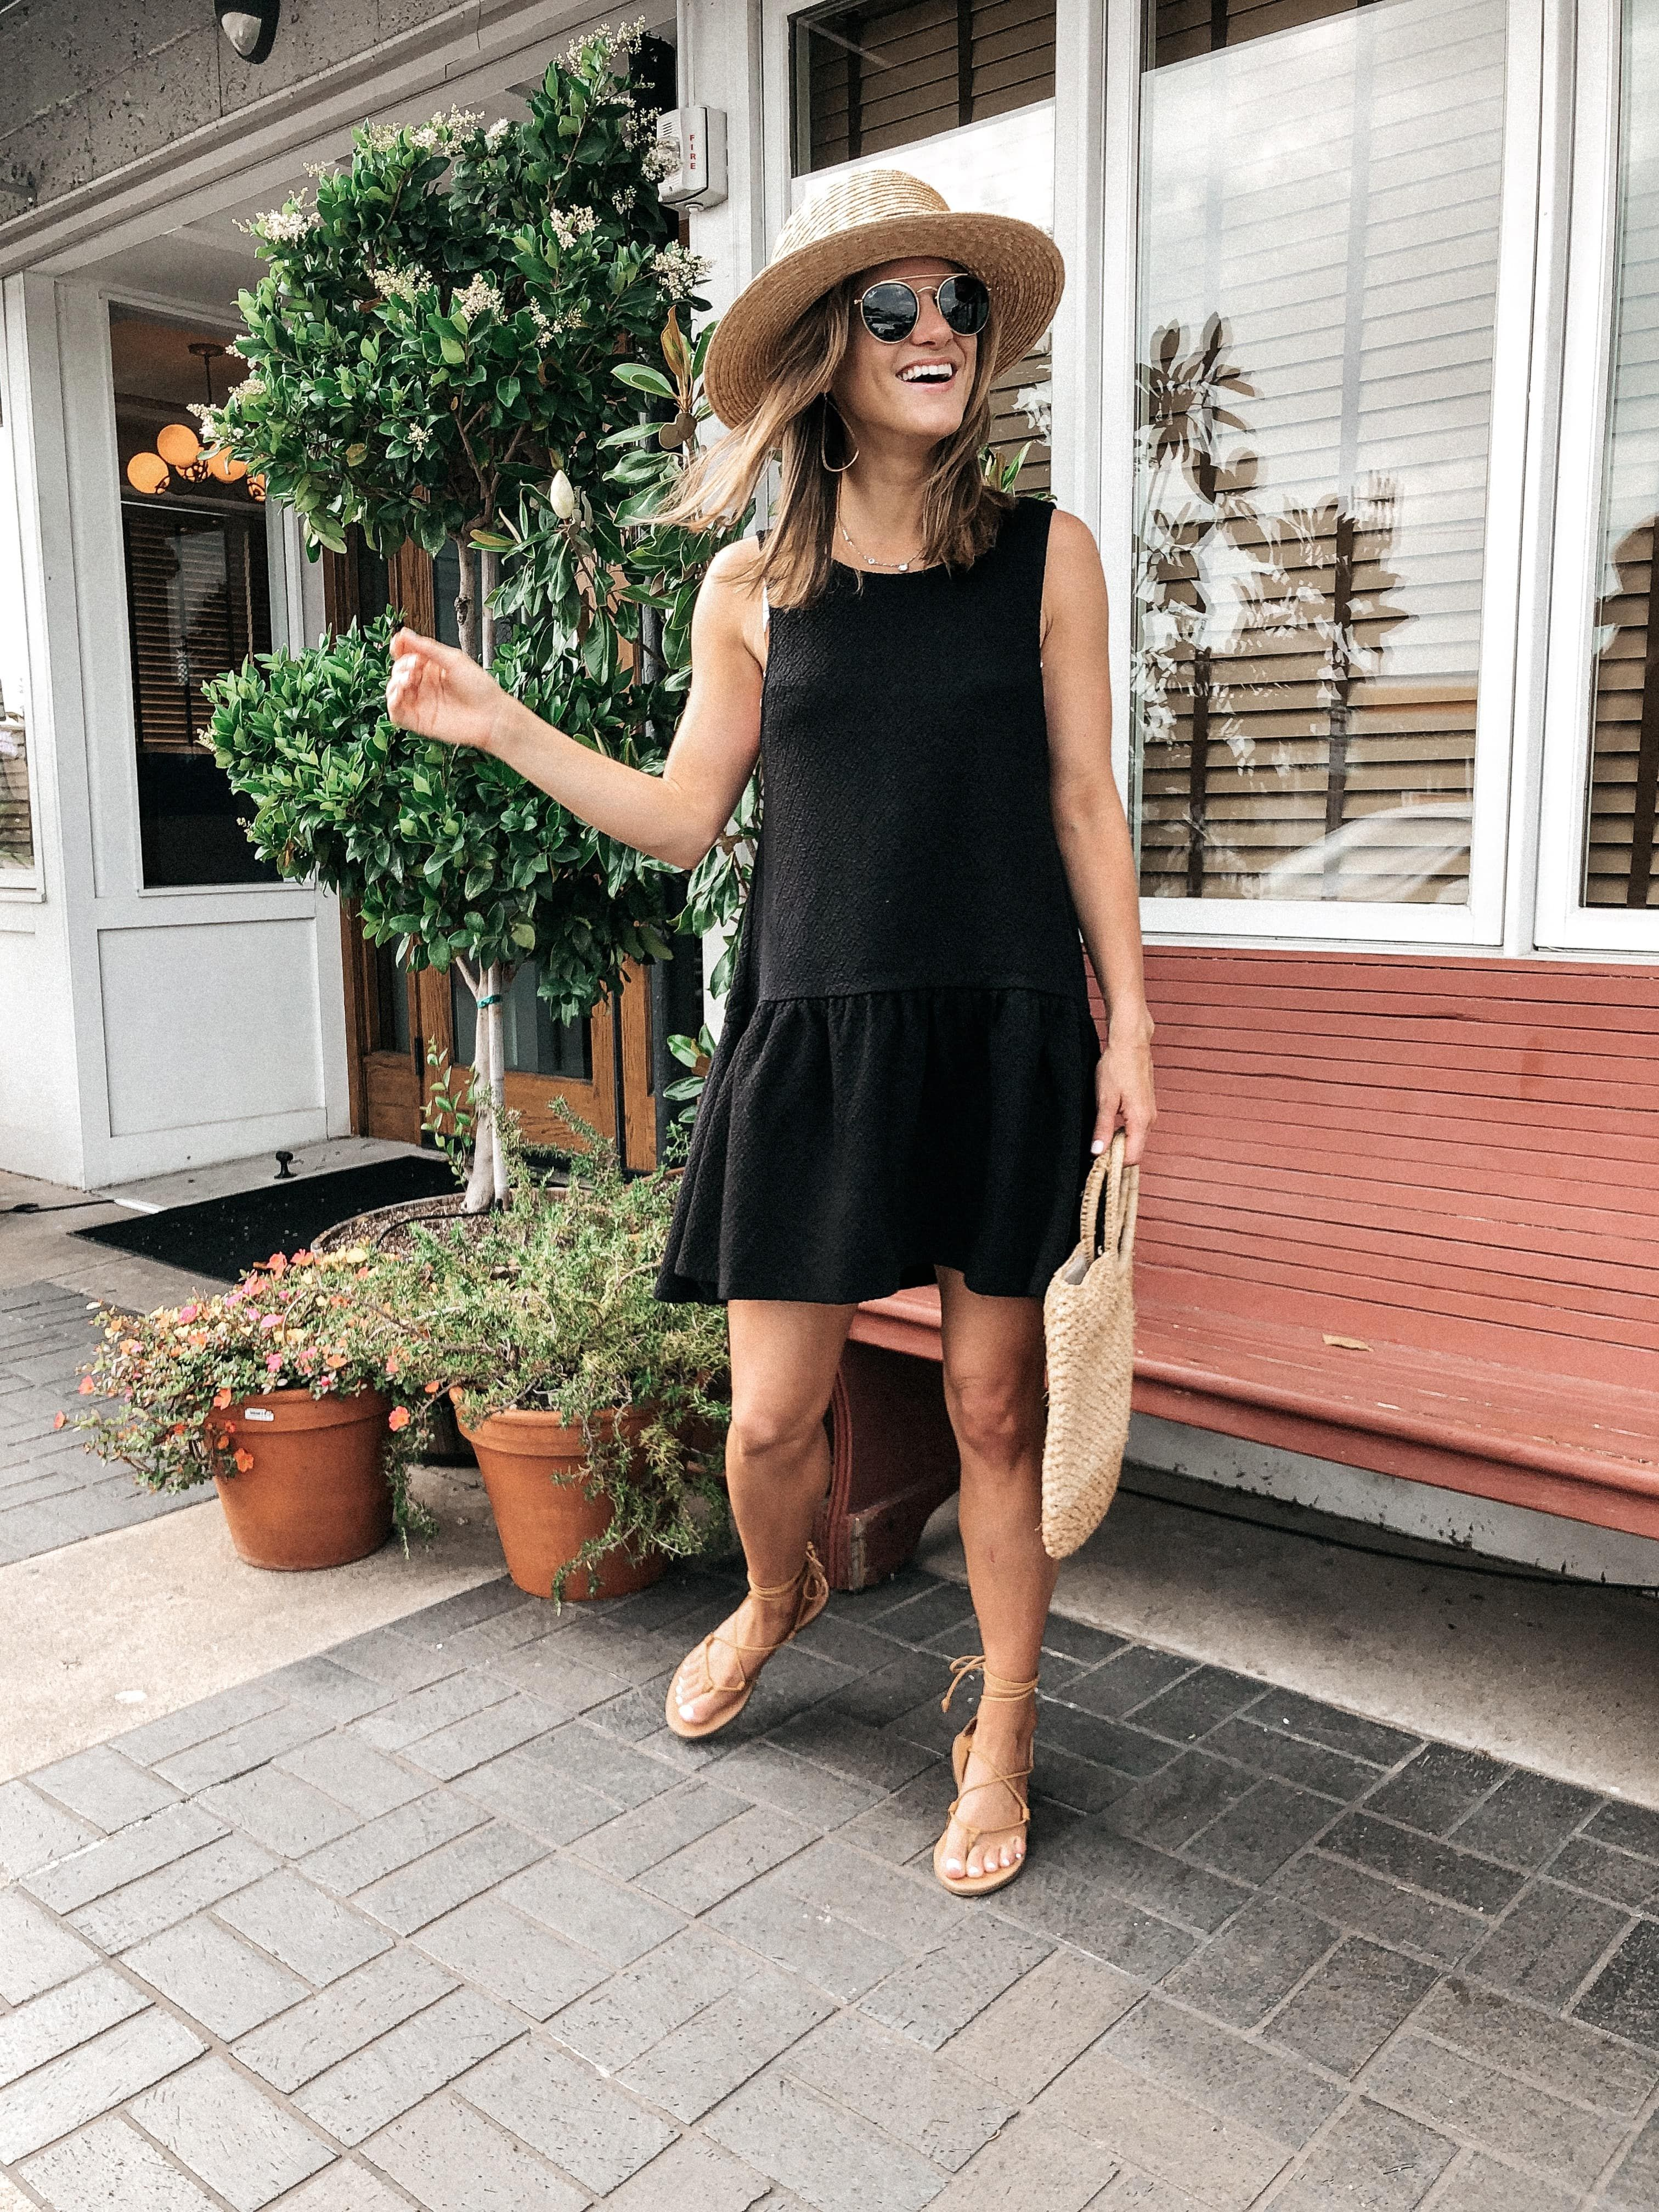 Shoes And Bag Beach Outfit Summer Black Dress Fashion [ 4032 x 3024 Pixel ]